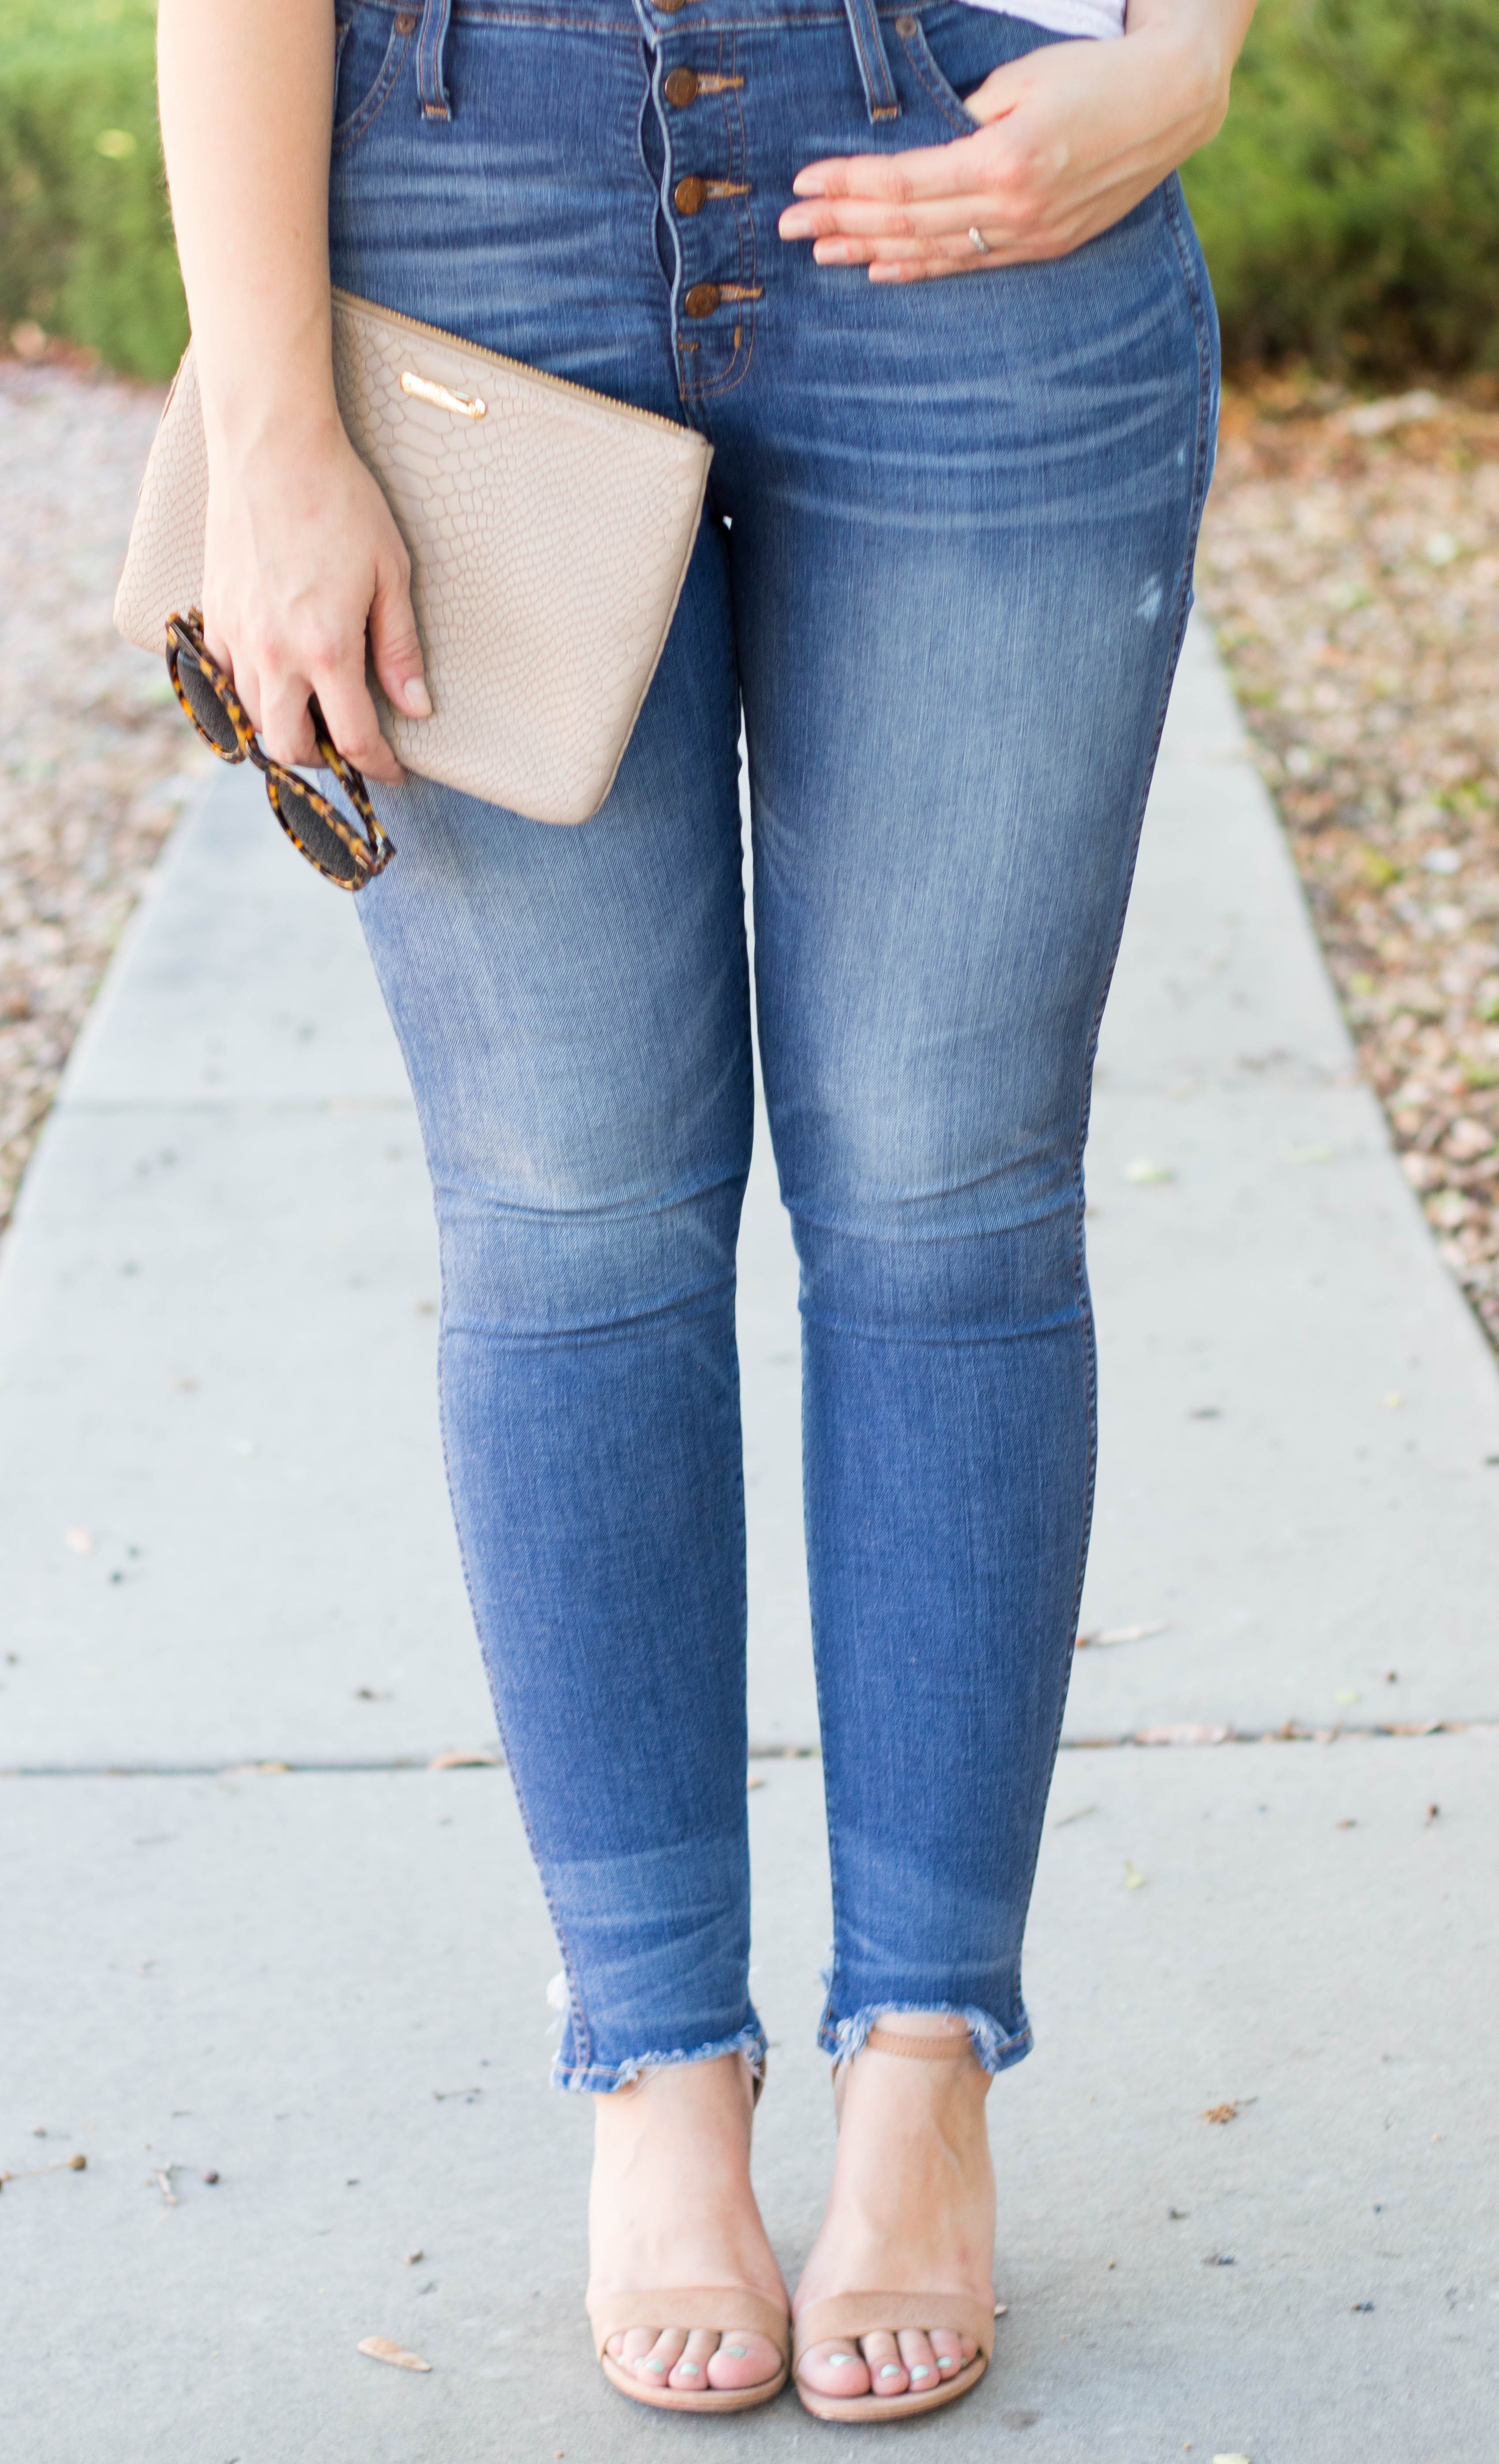 madewell high rise button fly denim #madewell #everydaymadewell #nudeheels